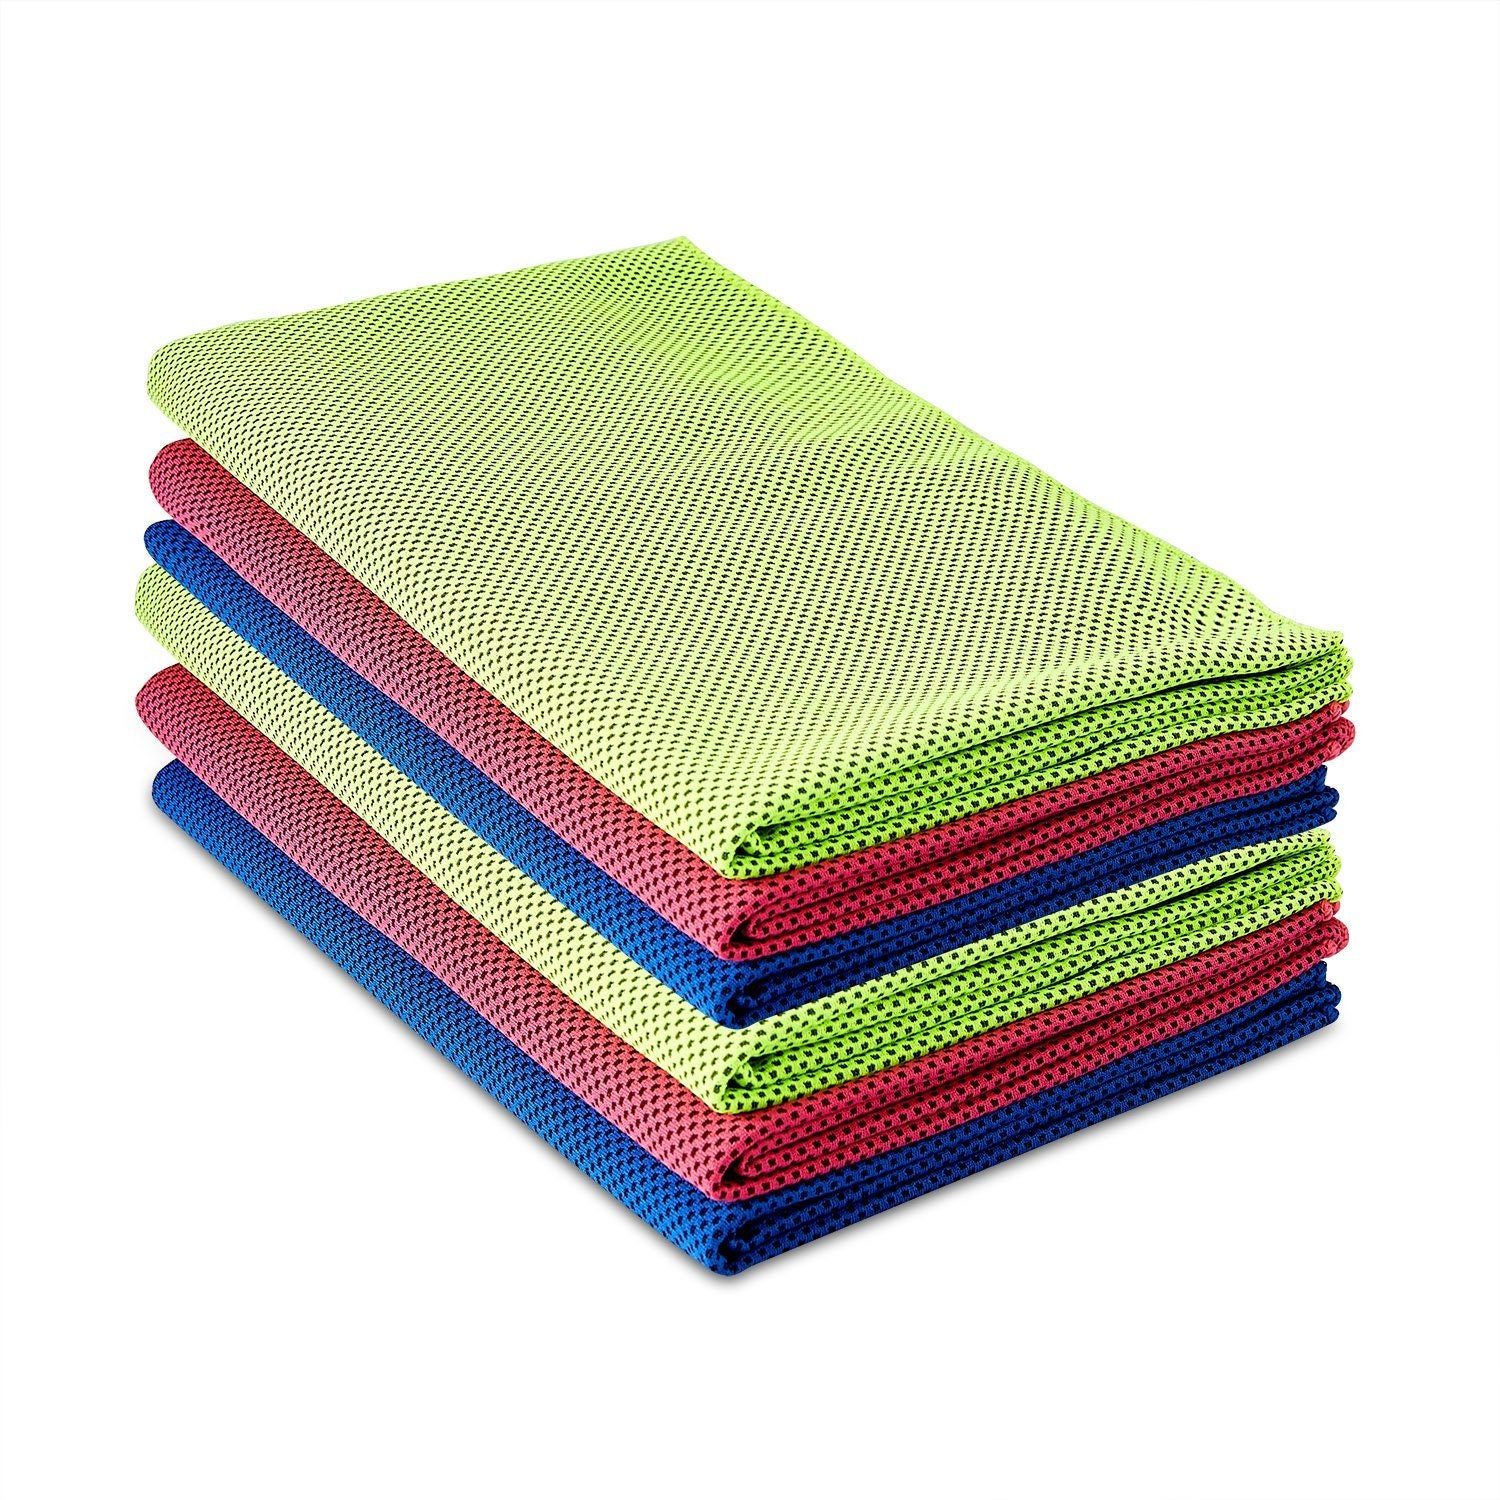 Washcloths For Sale: ON SALE 1/2 Price Cooling Towels Great For The Gym And